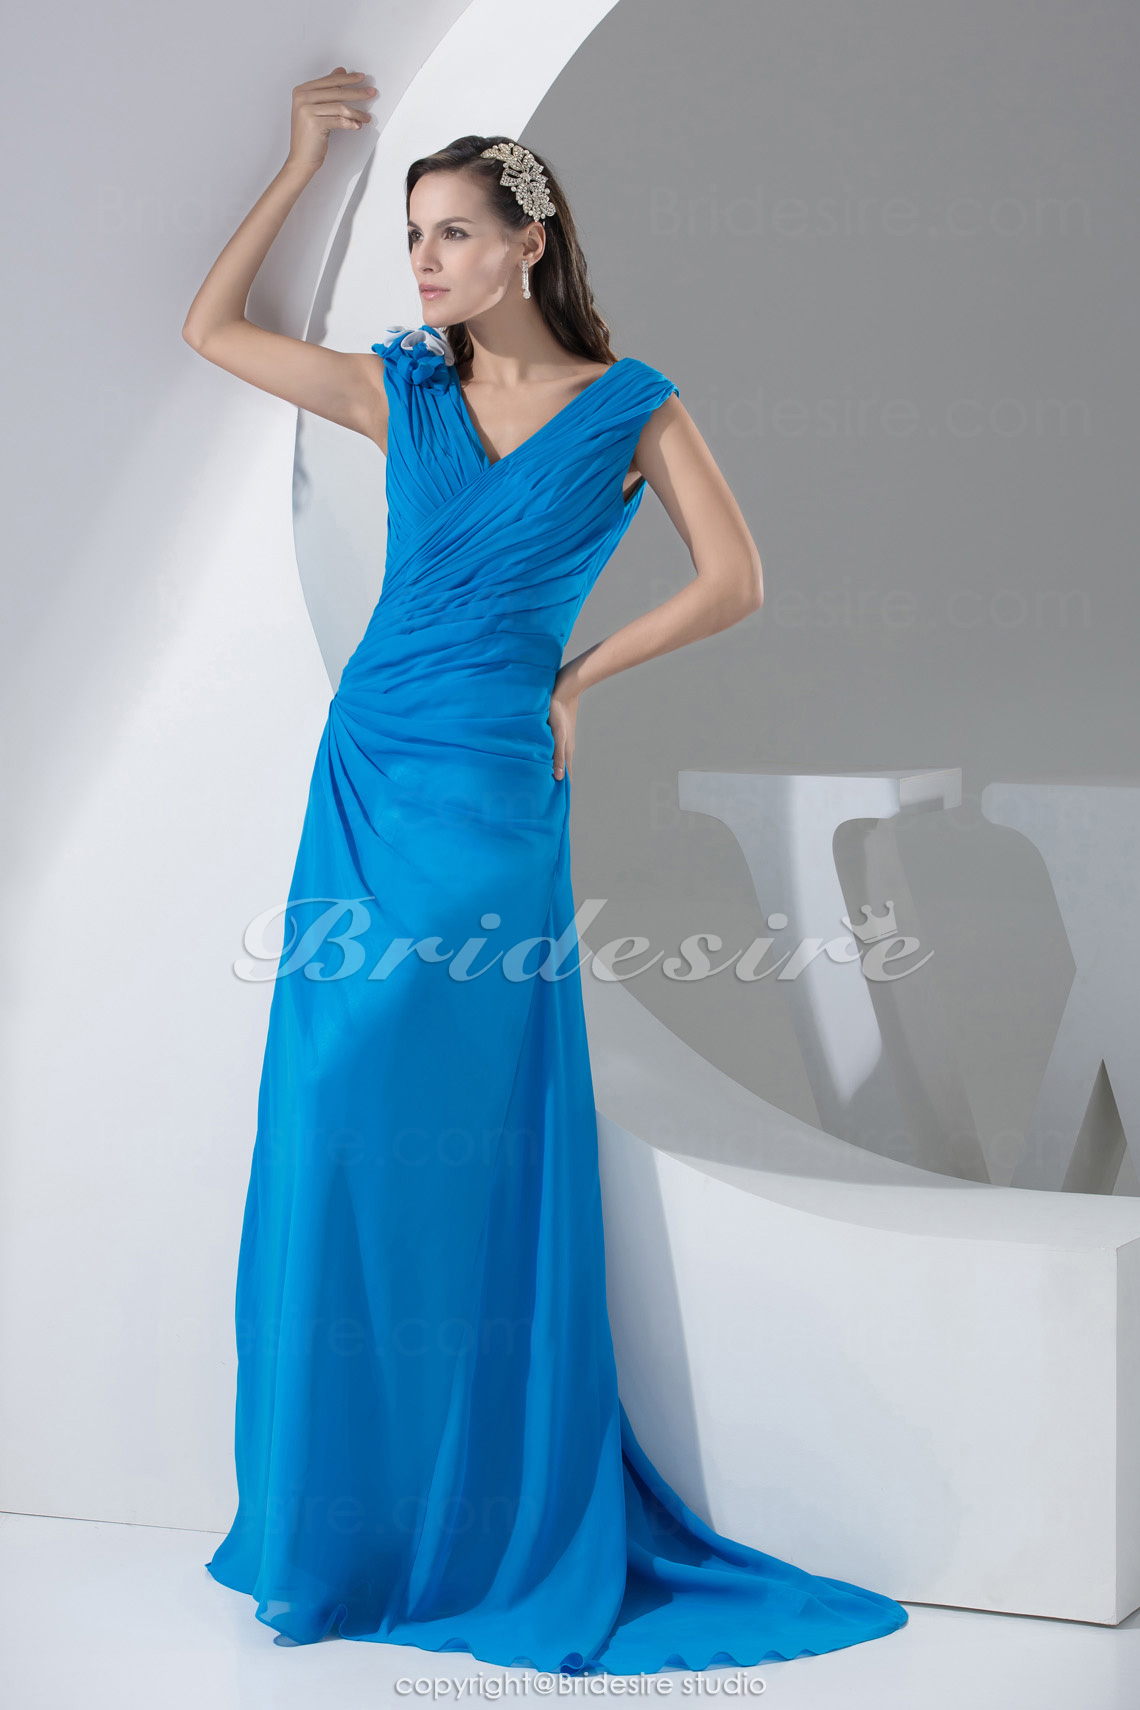 Sheath/Column V-neck Floor-length Sweep Train Sleeveless Chiffon Mother of the Bride Dress